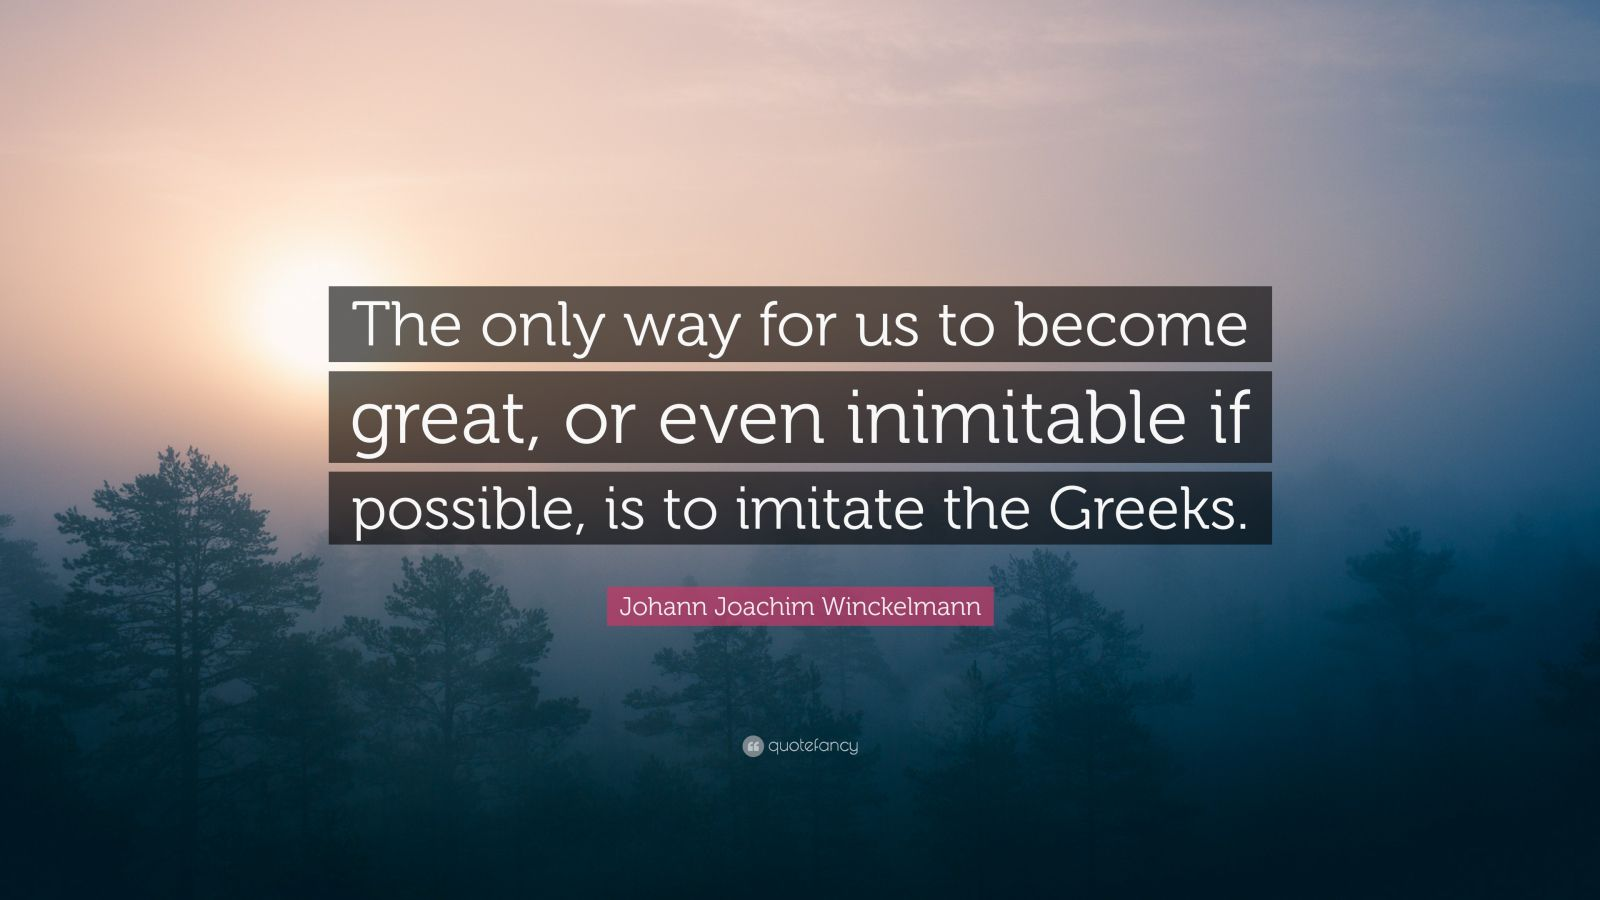 """Johann Joachim Winckelmann Quote: """"The only way for us to become great, or even inimitable if possible, is to imitate the Greeks."""""""